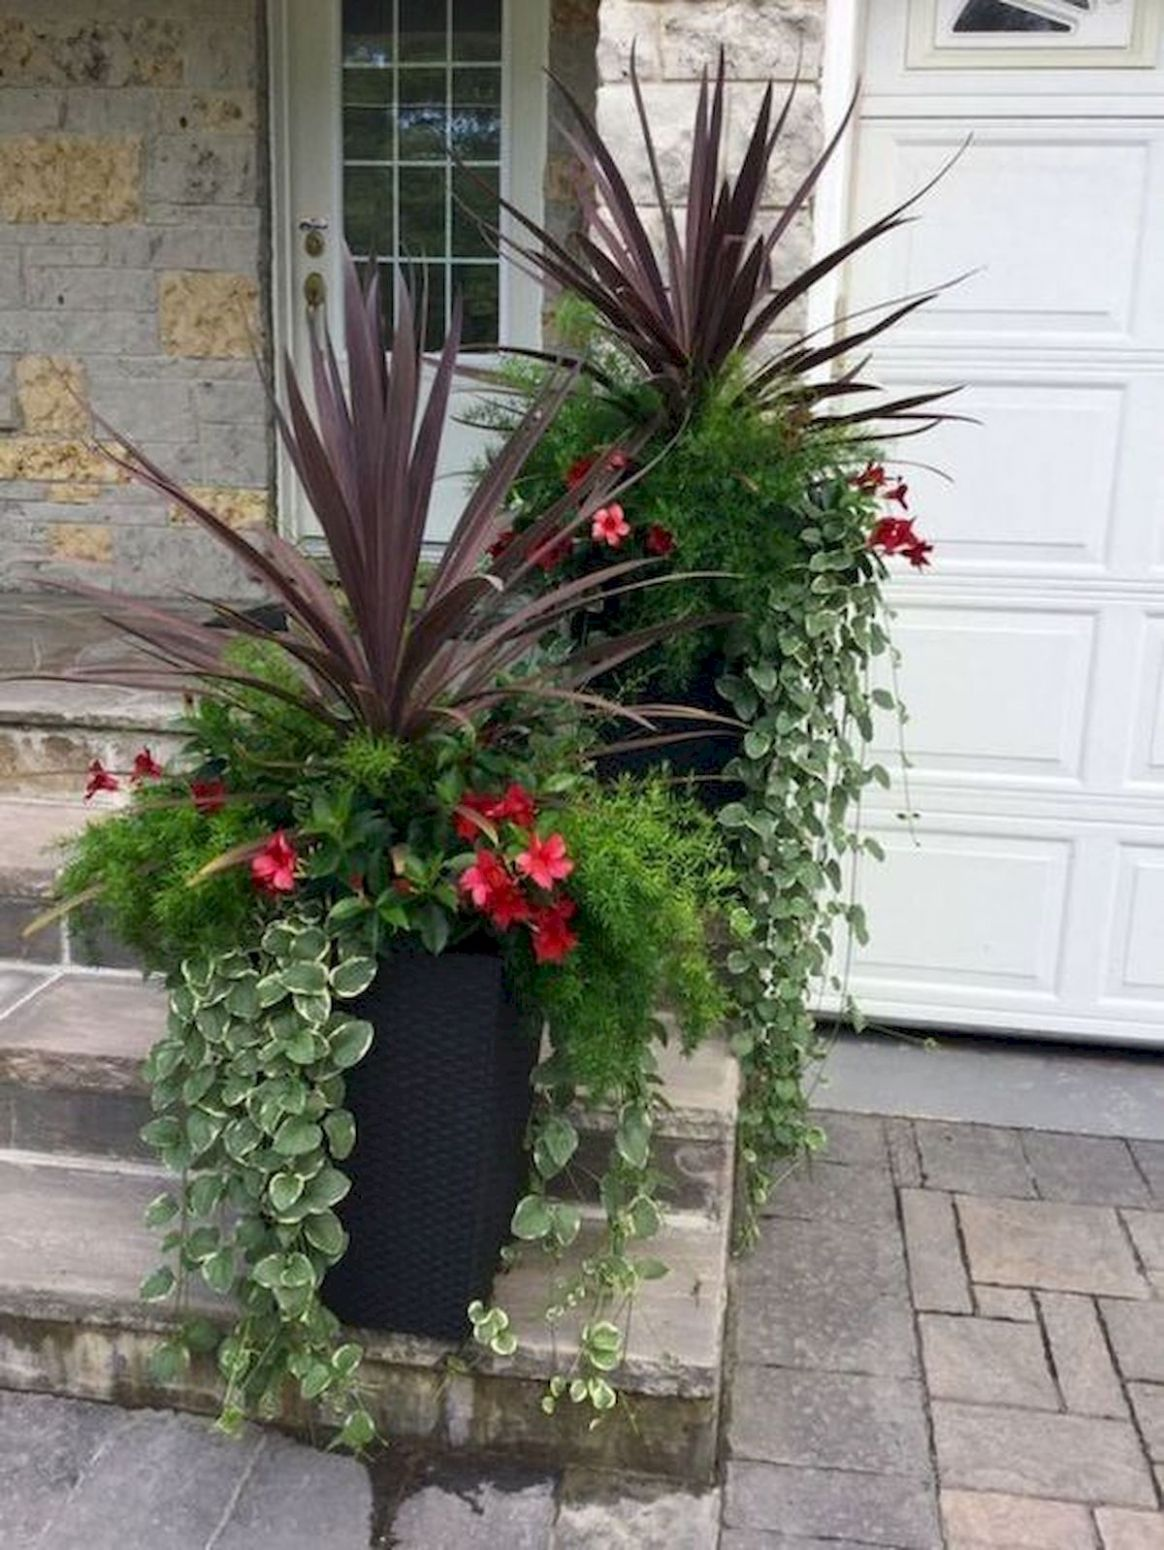 9 Awesome Planter Ideas for Your Front Porch - house9